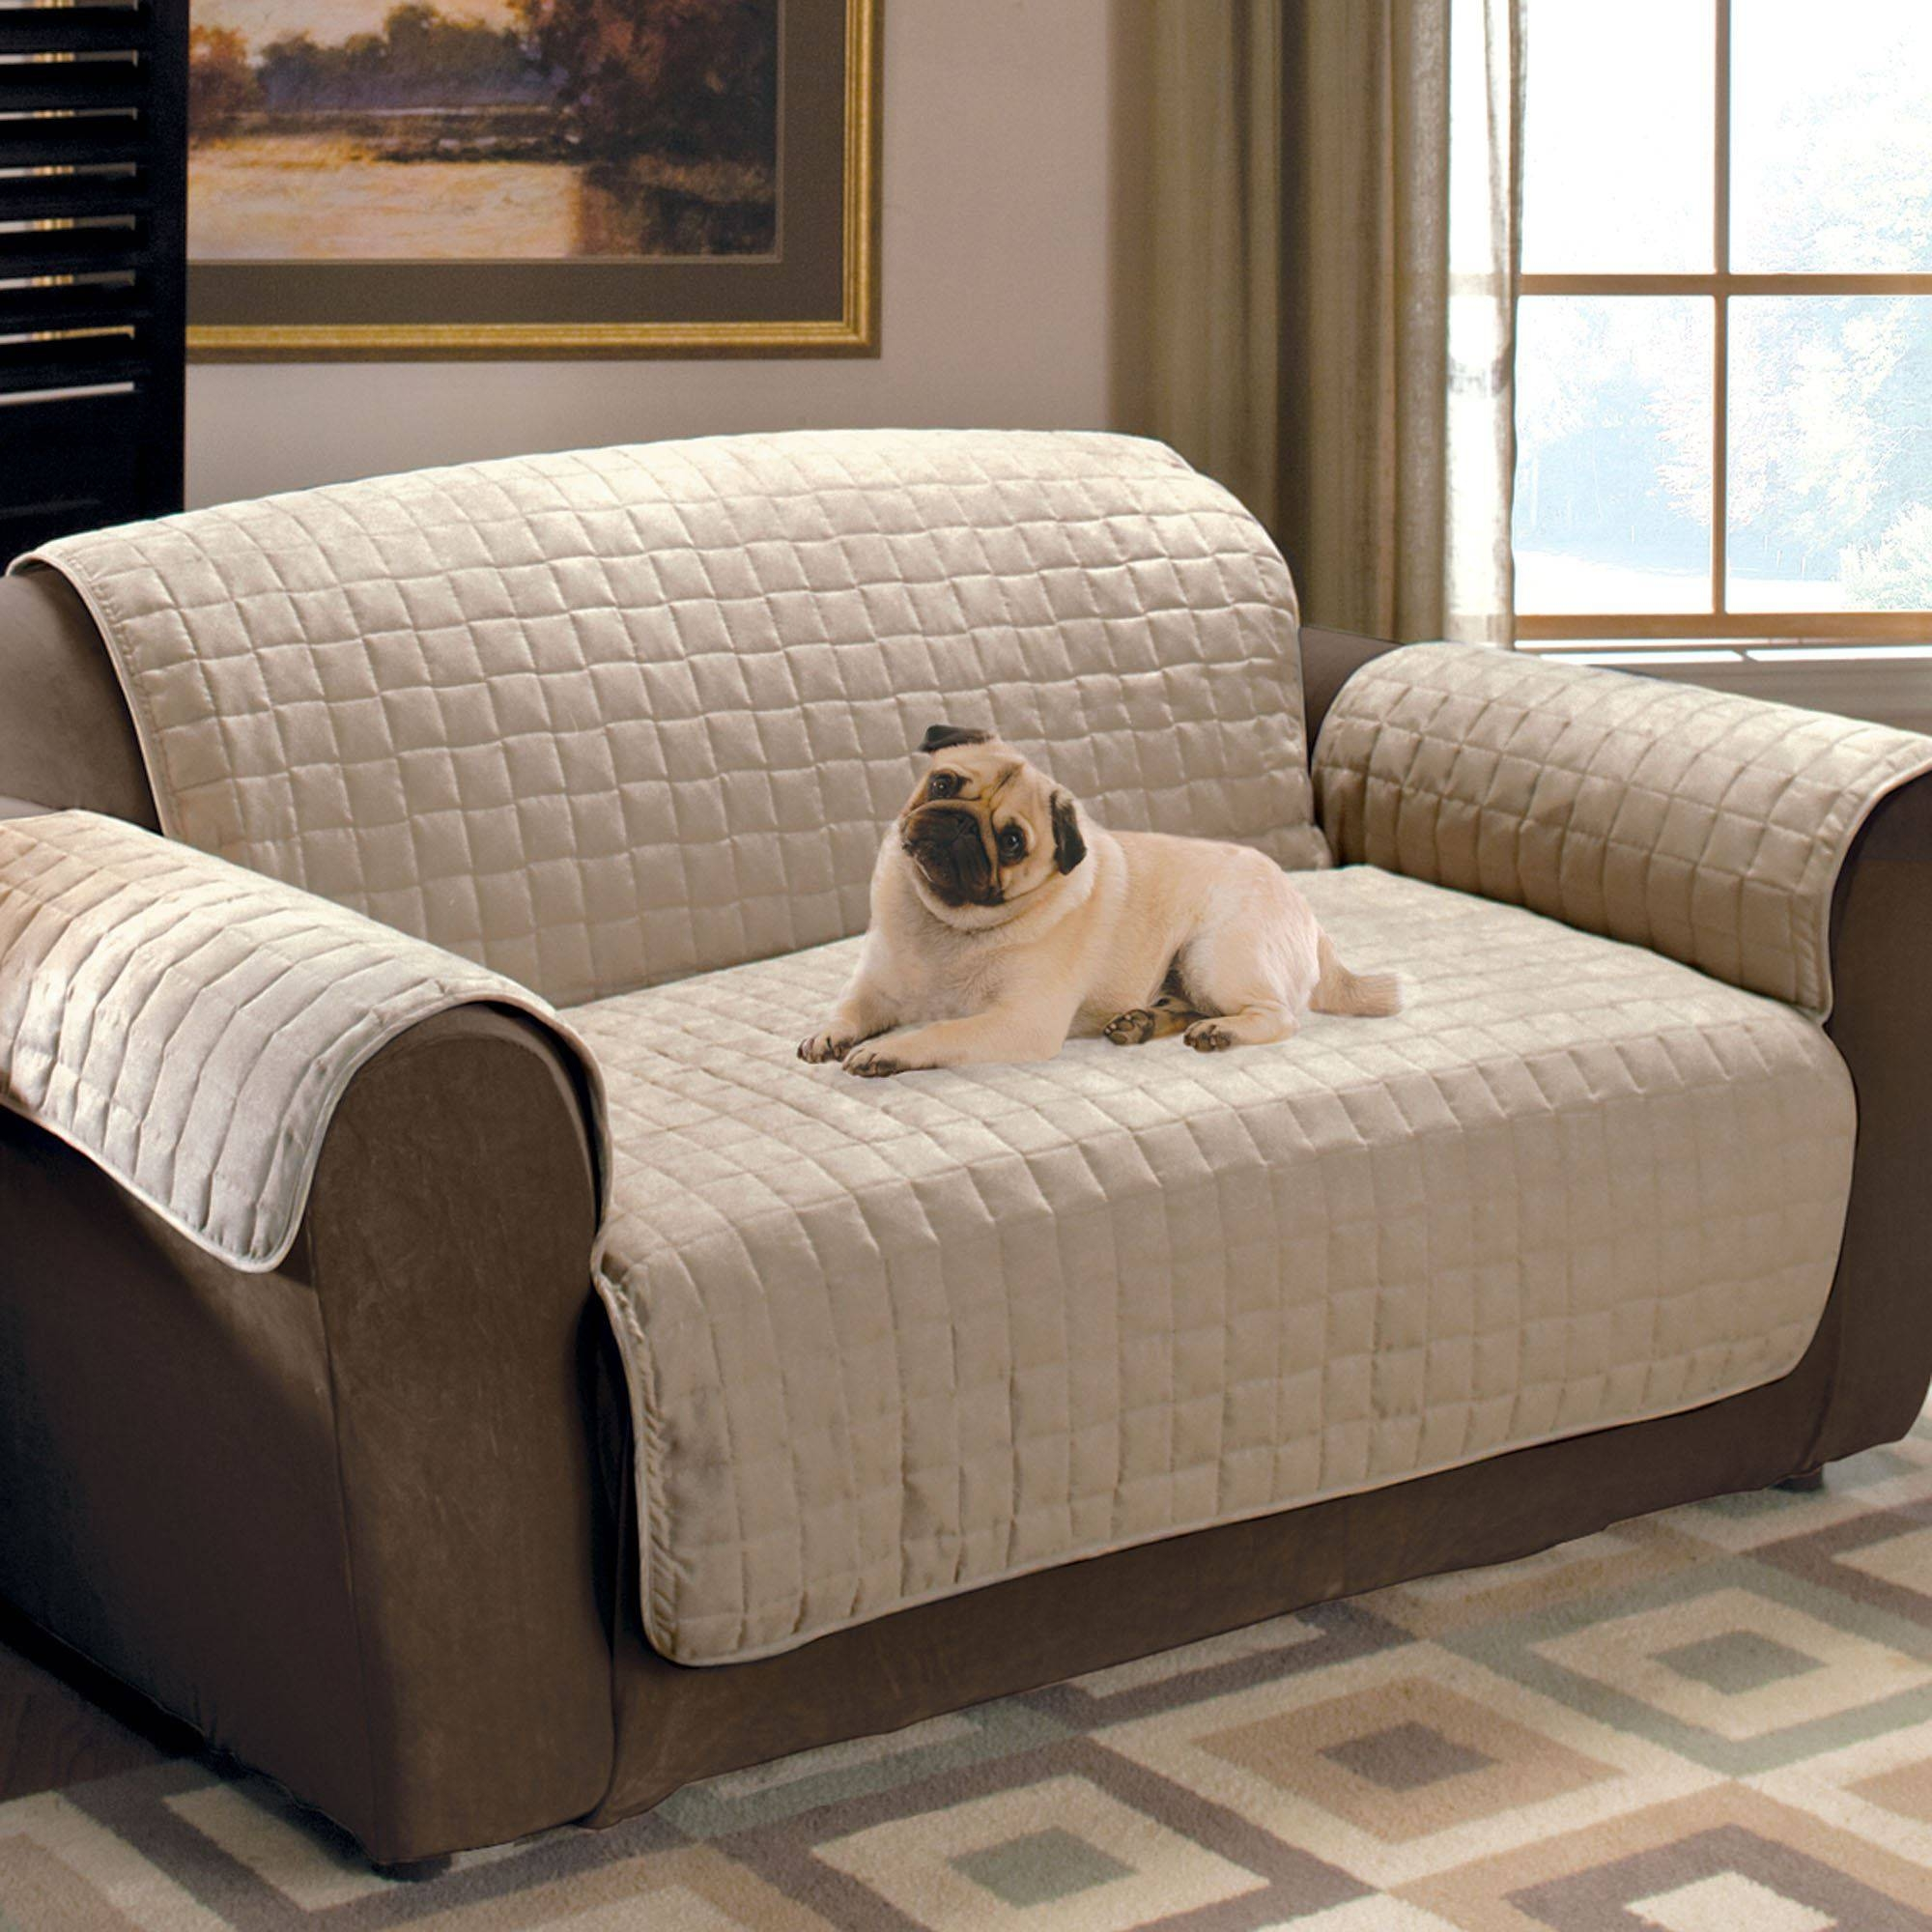 Sofa: Slipcover For Reclining Sofa | Double Recliner Sofa intended for Recliner Sofa Slipcovers (Image 13 of 15)